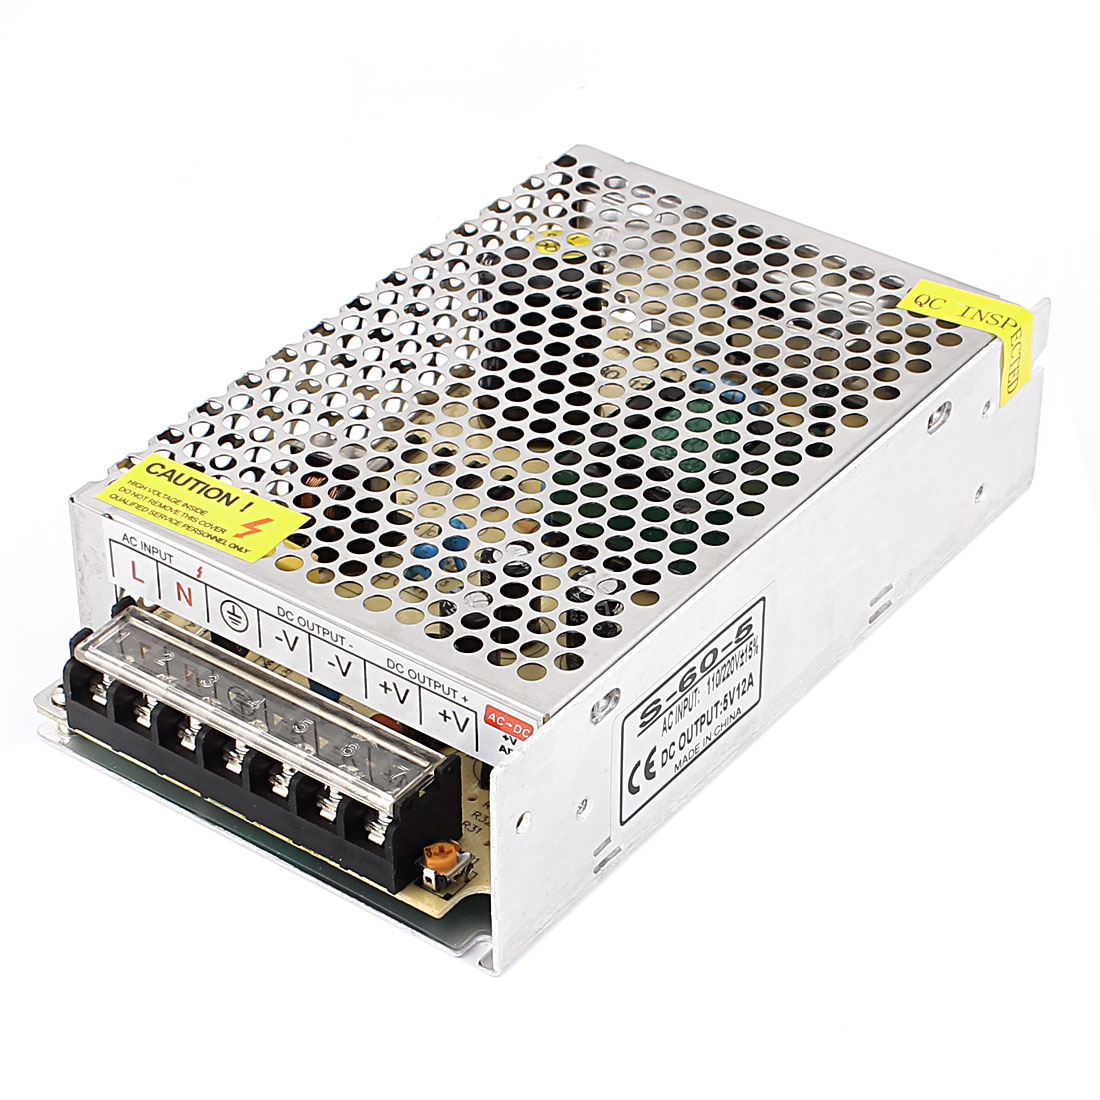 DC 5V 12A 60W 7 Terminals Power Supply Switching Converter for LED Strip Light